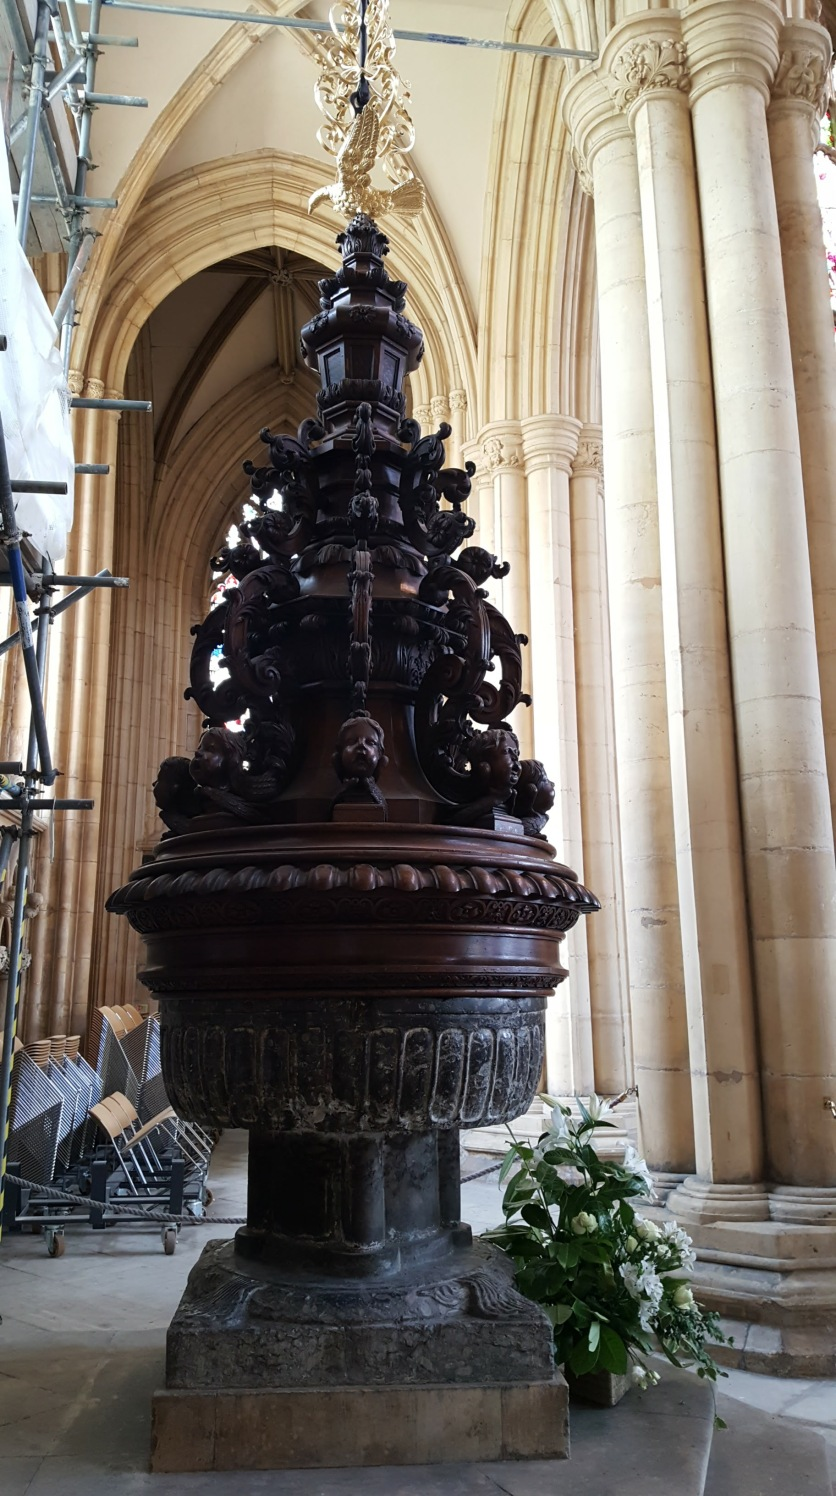 The 'Hanging' Font of Beverley Minster